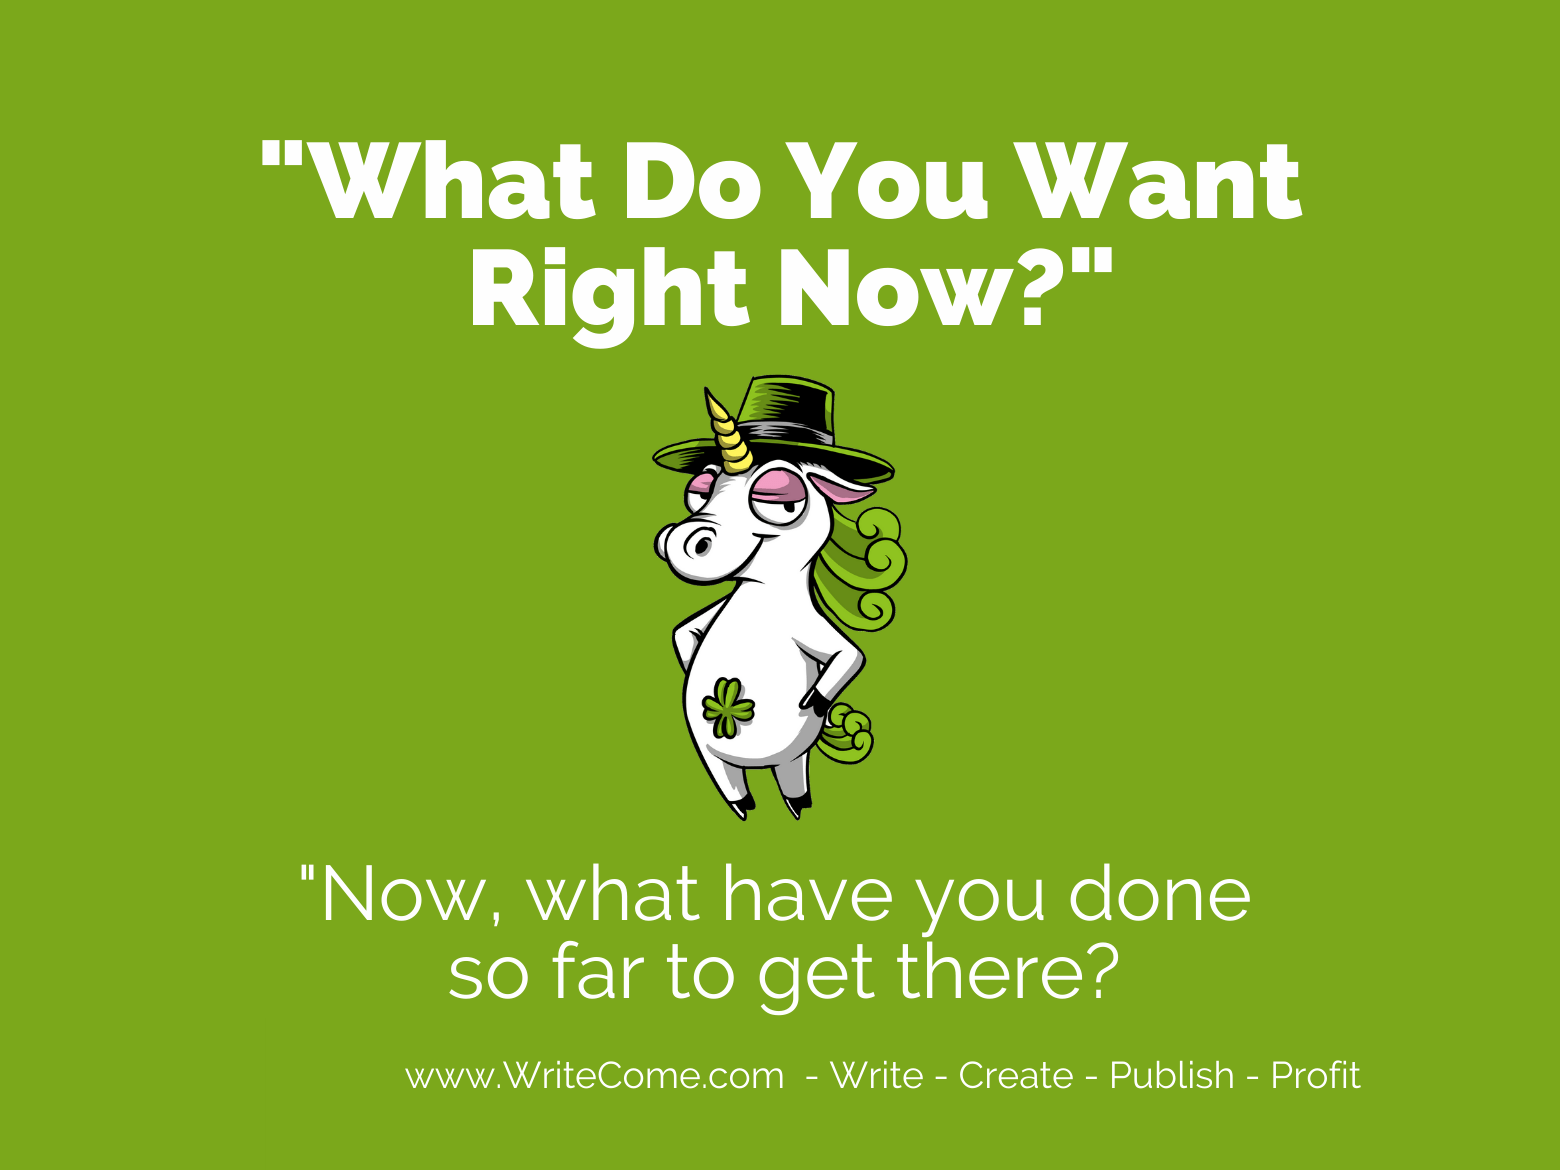 What Do You Want Right Now?